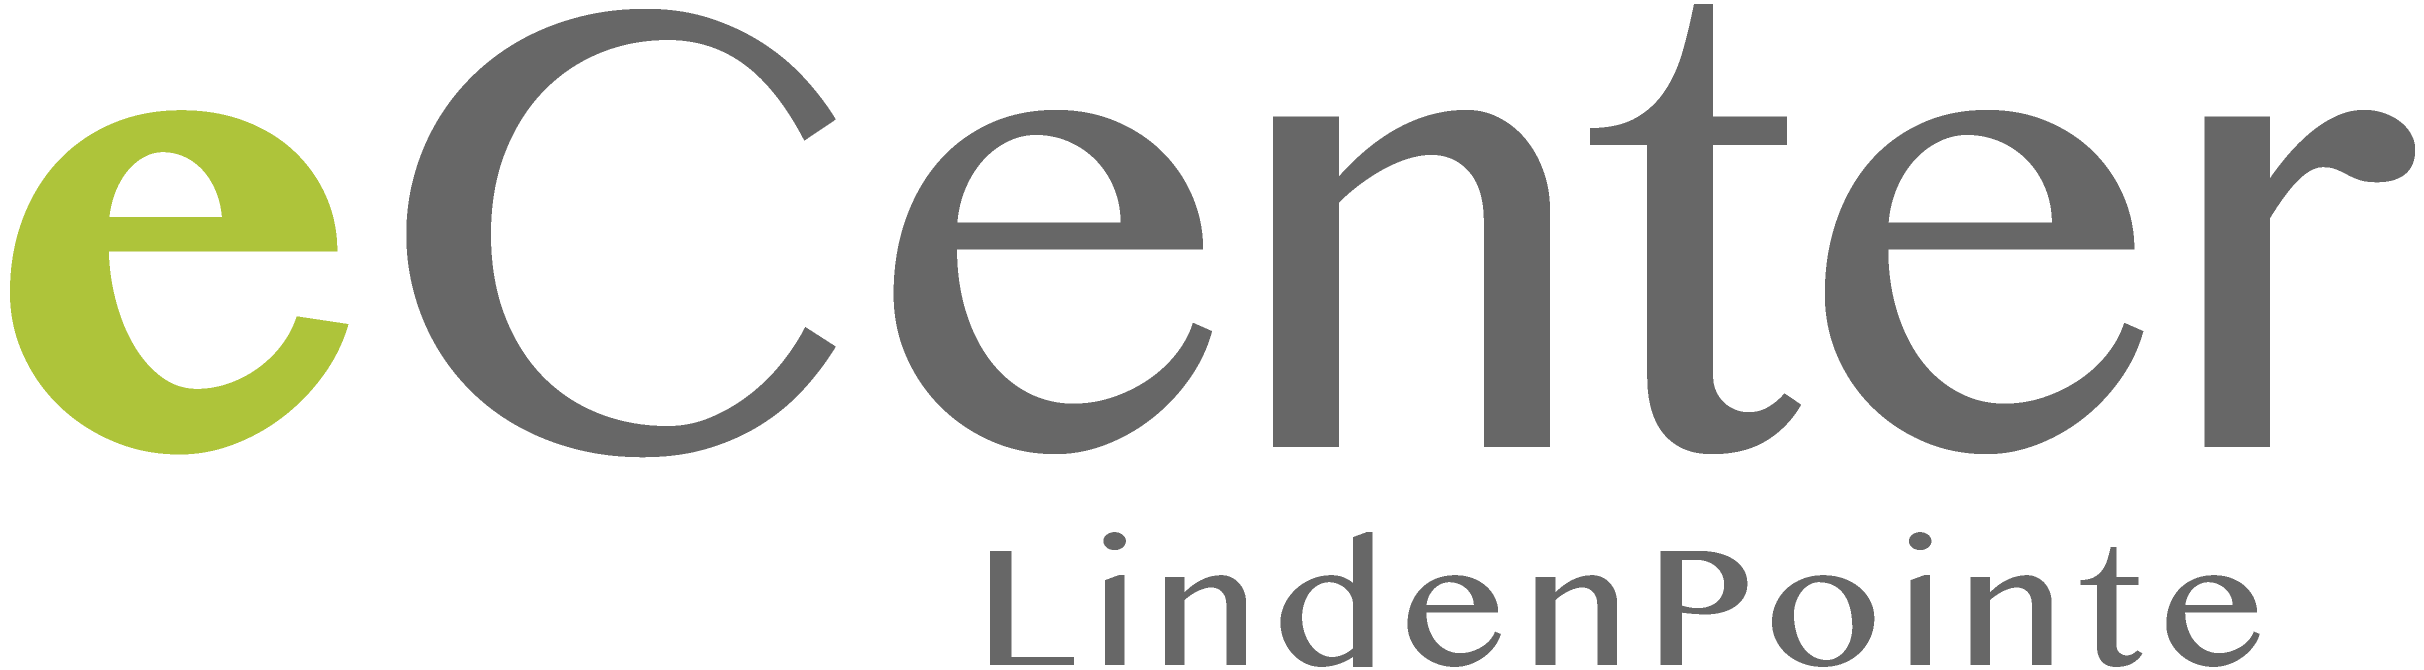 eCenter@LindenPointe